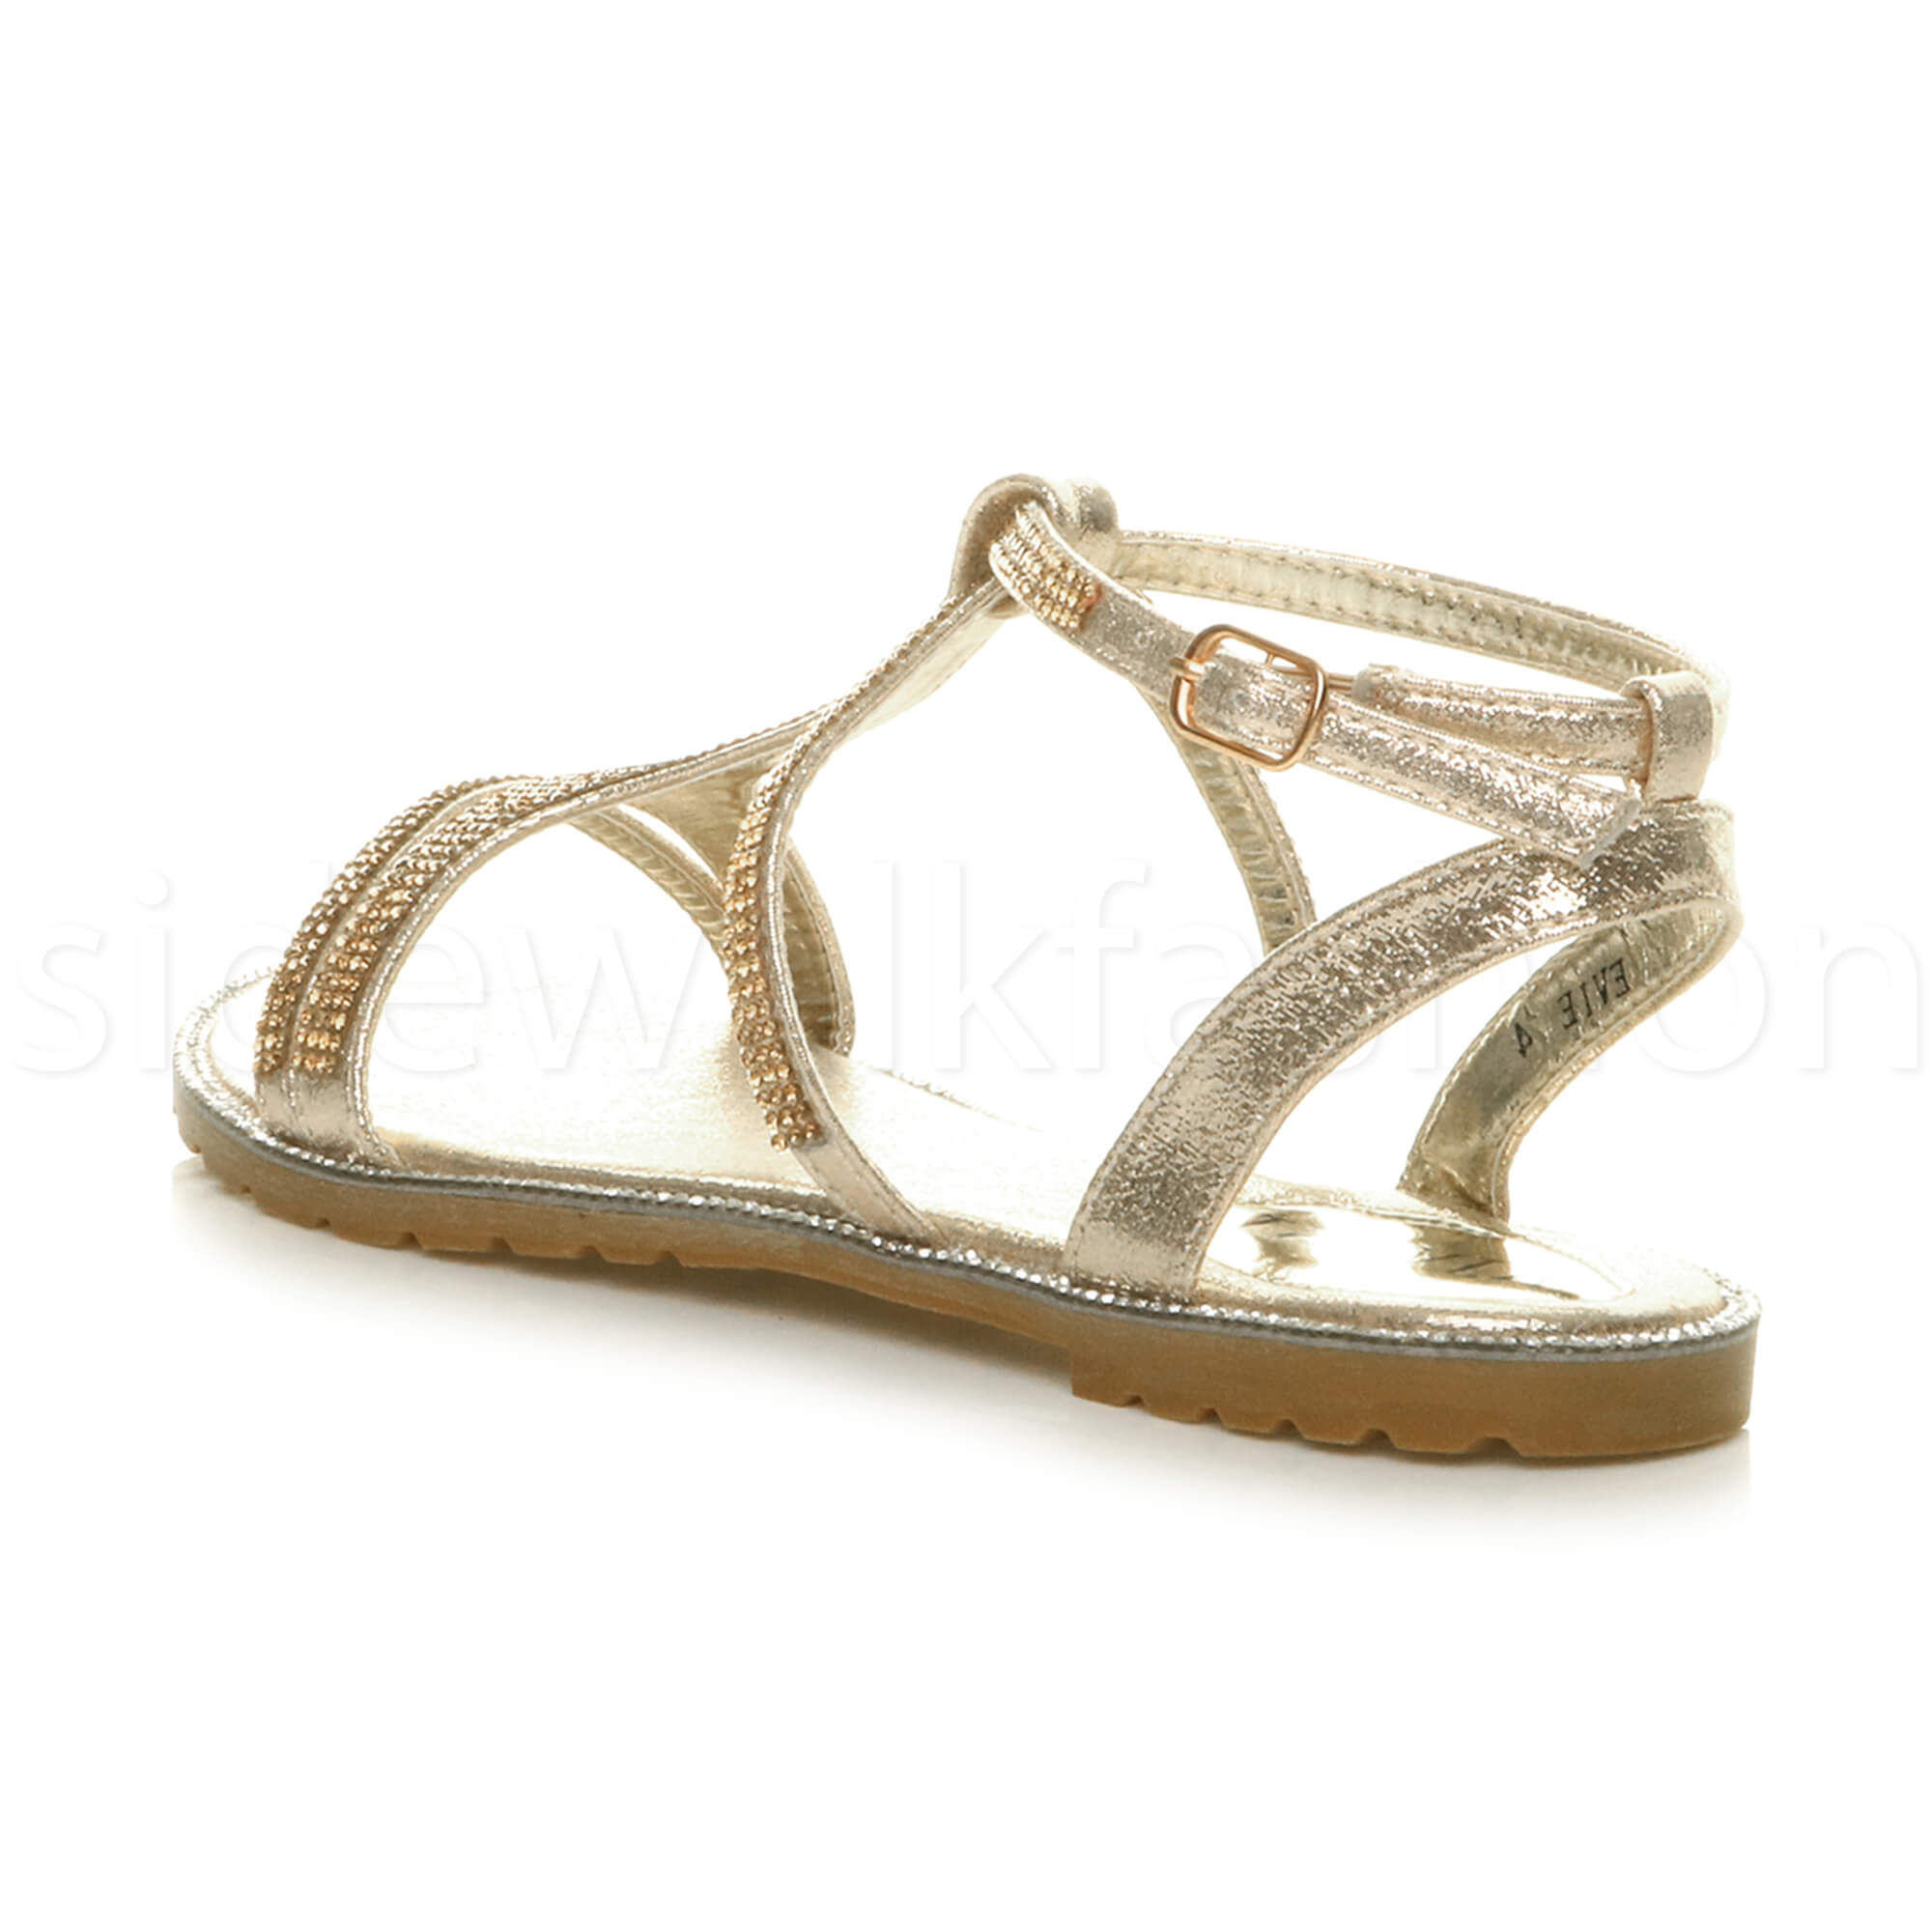 483447ff7 Womens ladies flat embellished diamante sparkly strappy t-bar ...